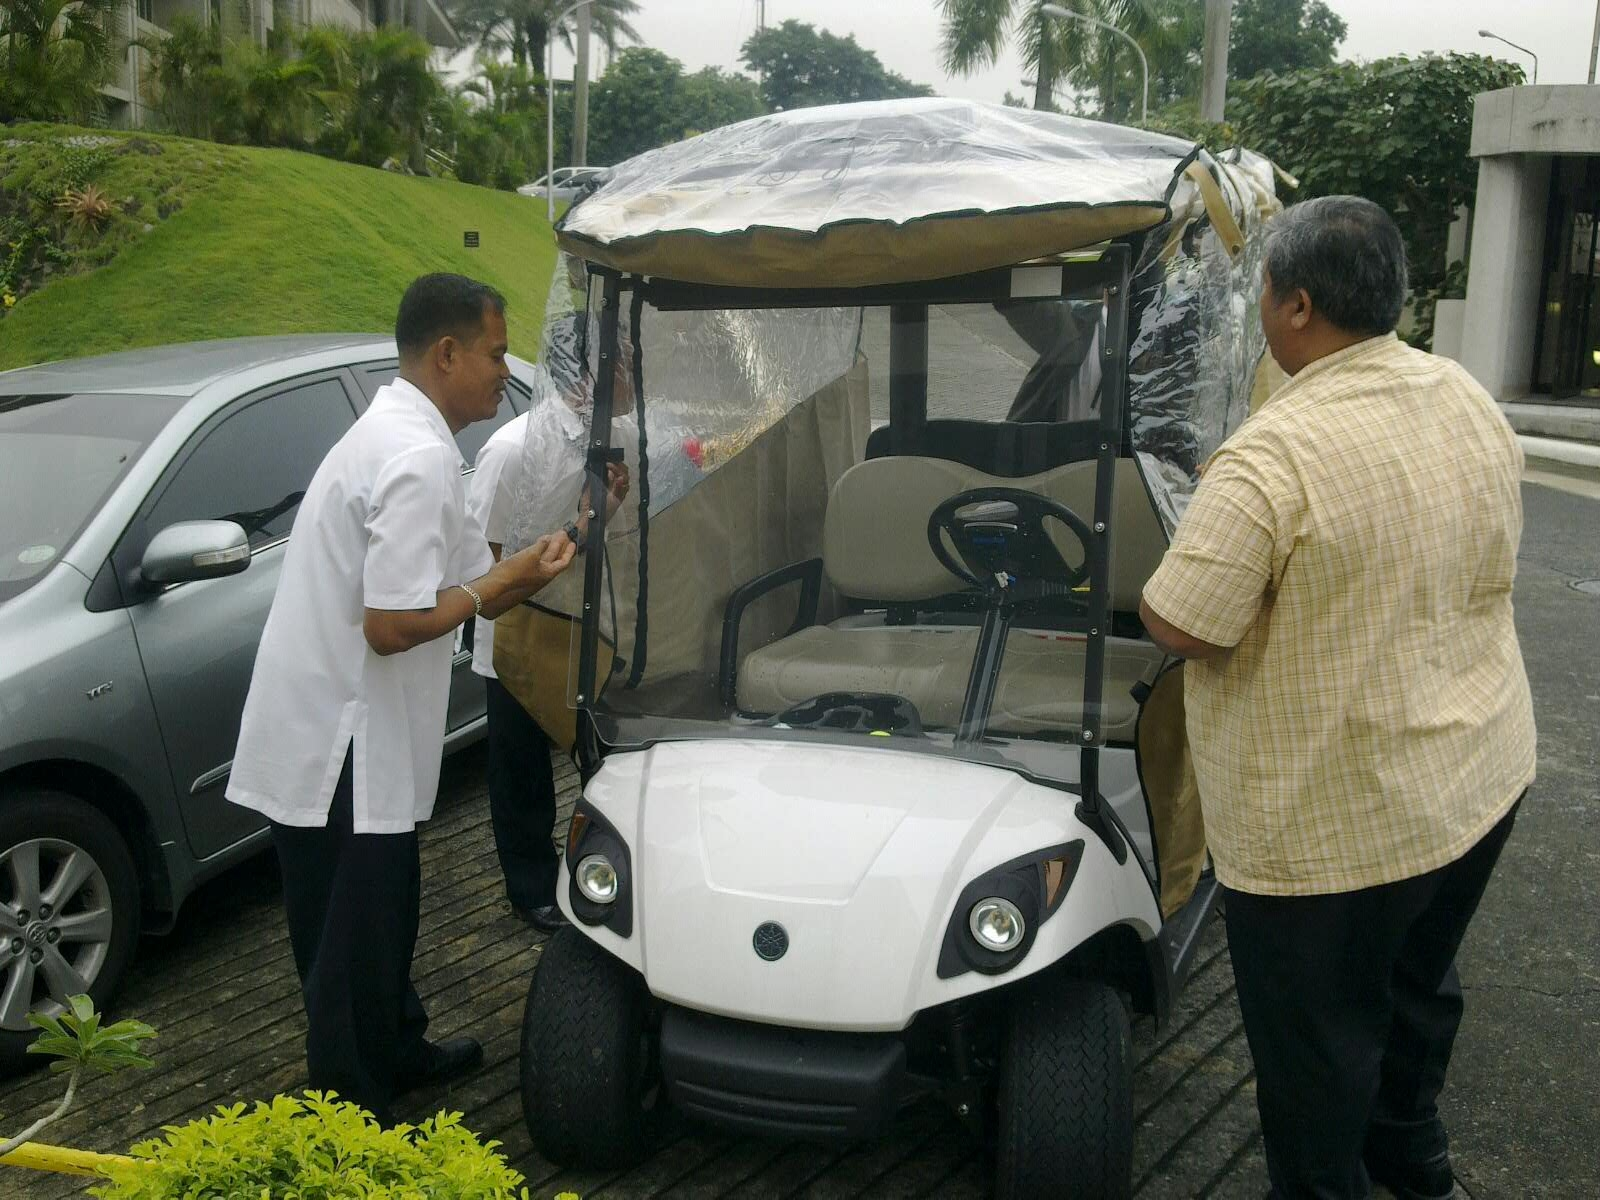 Our Mission to the Philippines: July 11th Arrival of the Golf Cart on rain covers for tents, rain covers for shopping carts, rain covers for shoes, rain covers for forklifts, rain covers for equipment, rain covers for helmets, rain covers for generators, rain covers for gloves, rain covers for golf clubs, rain covers for doors, rain covers for electric scooters, rain covers for wheelchairs, rain covers for cars,